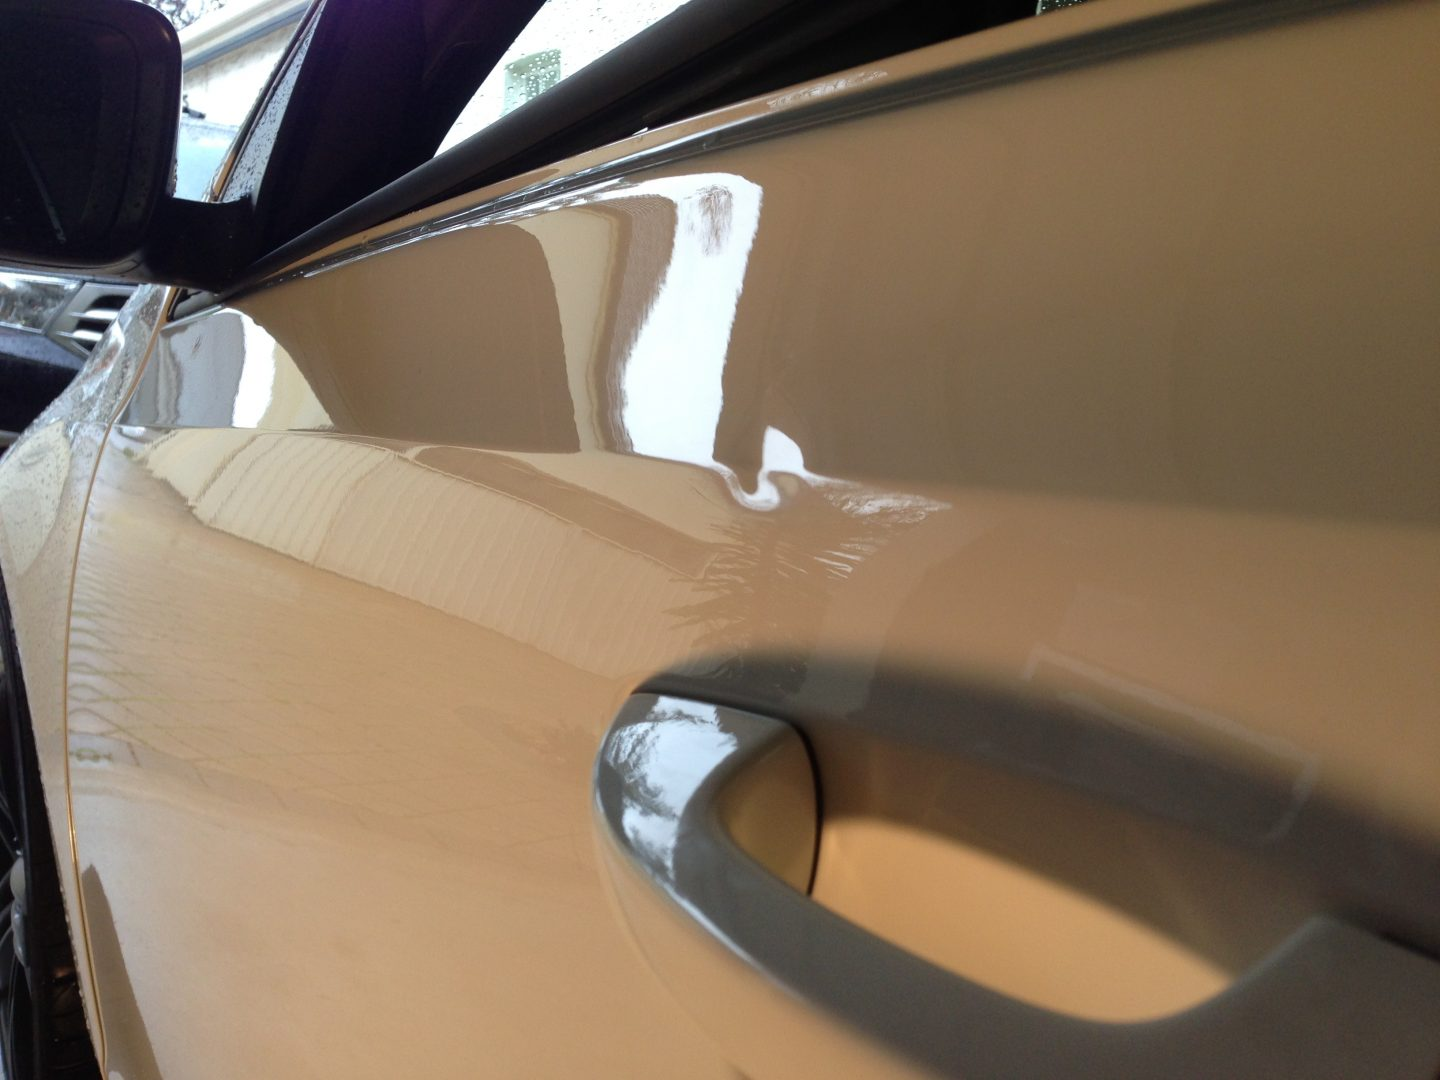 Paintless Dent Repair Is Excellent For Removing Small